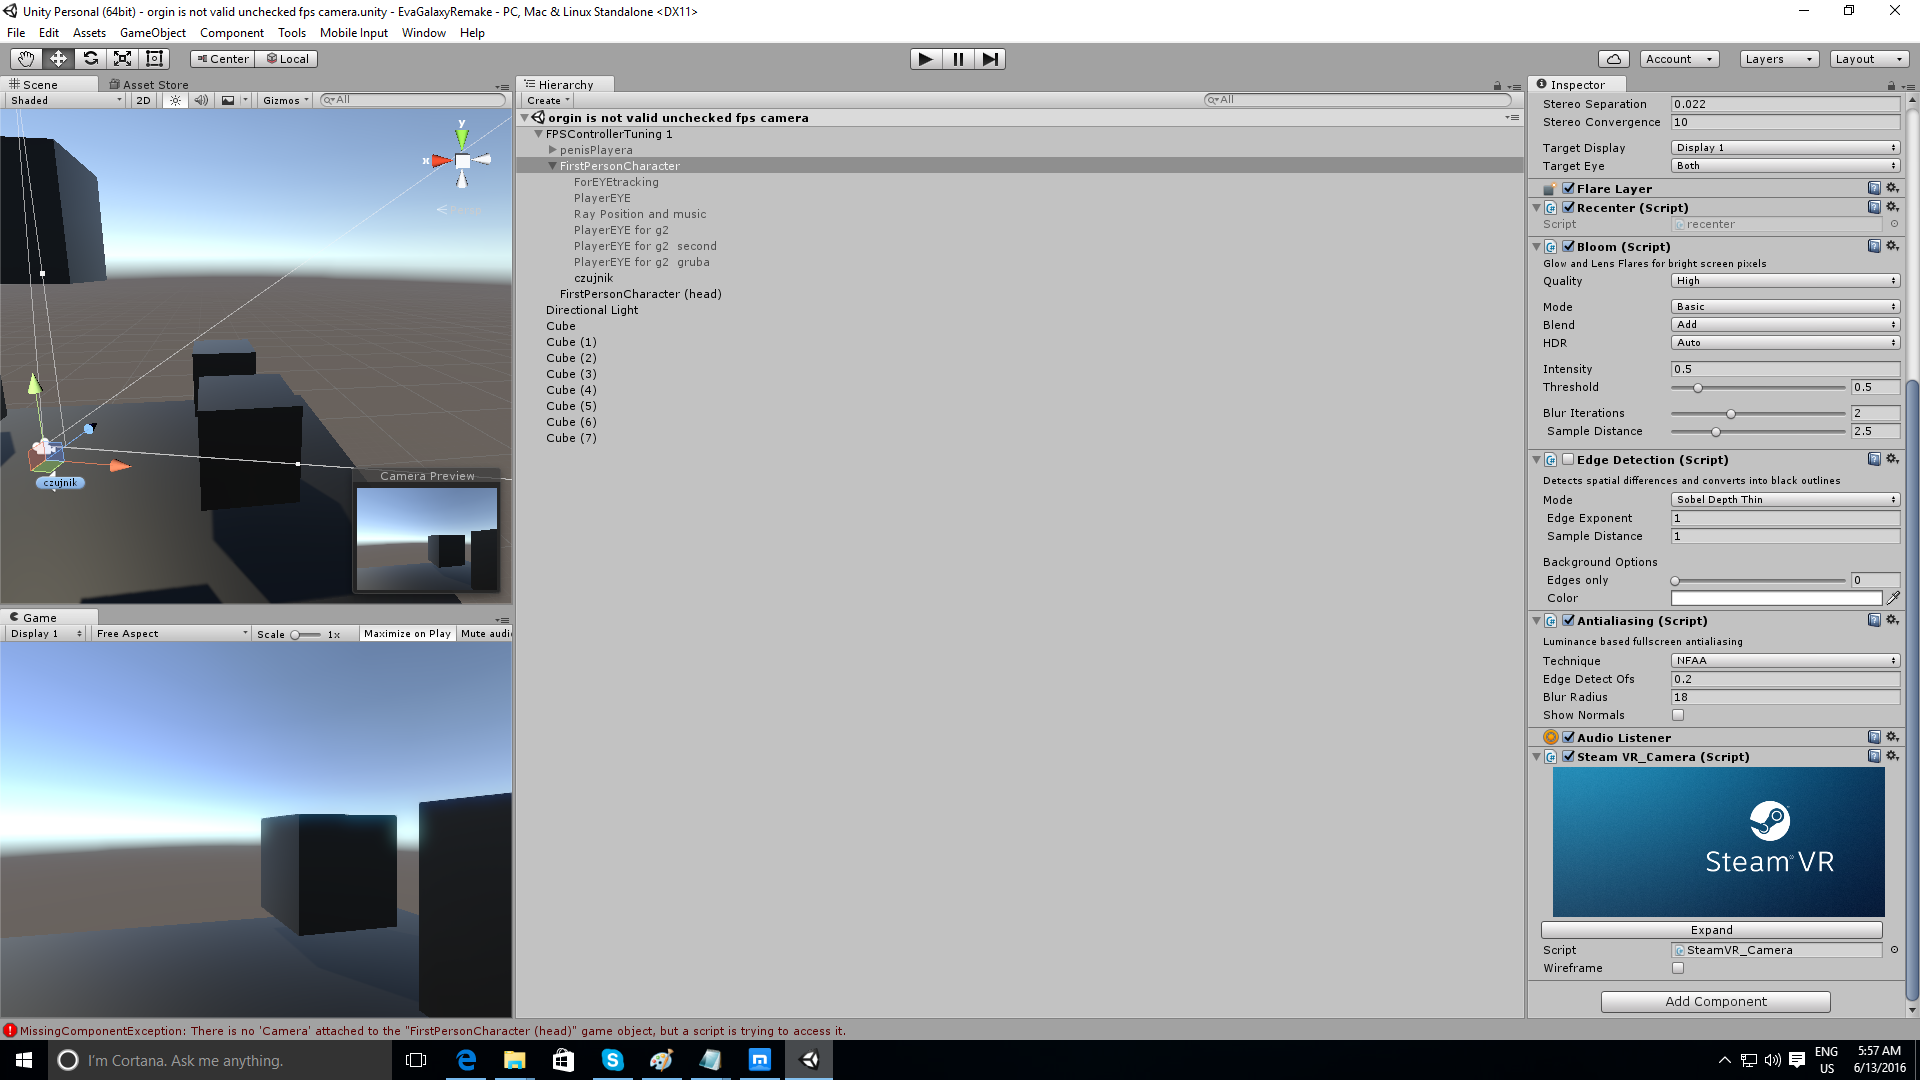 how to add steam vr (vive) to FPS unity 5 4 - Unity Forum